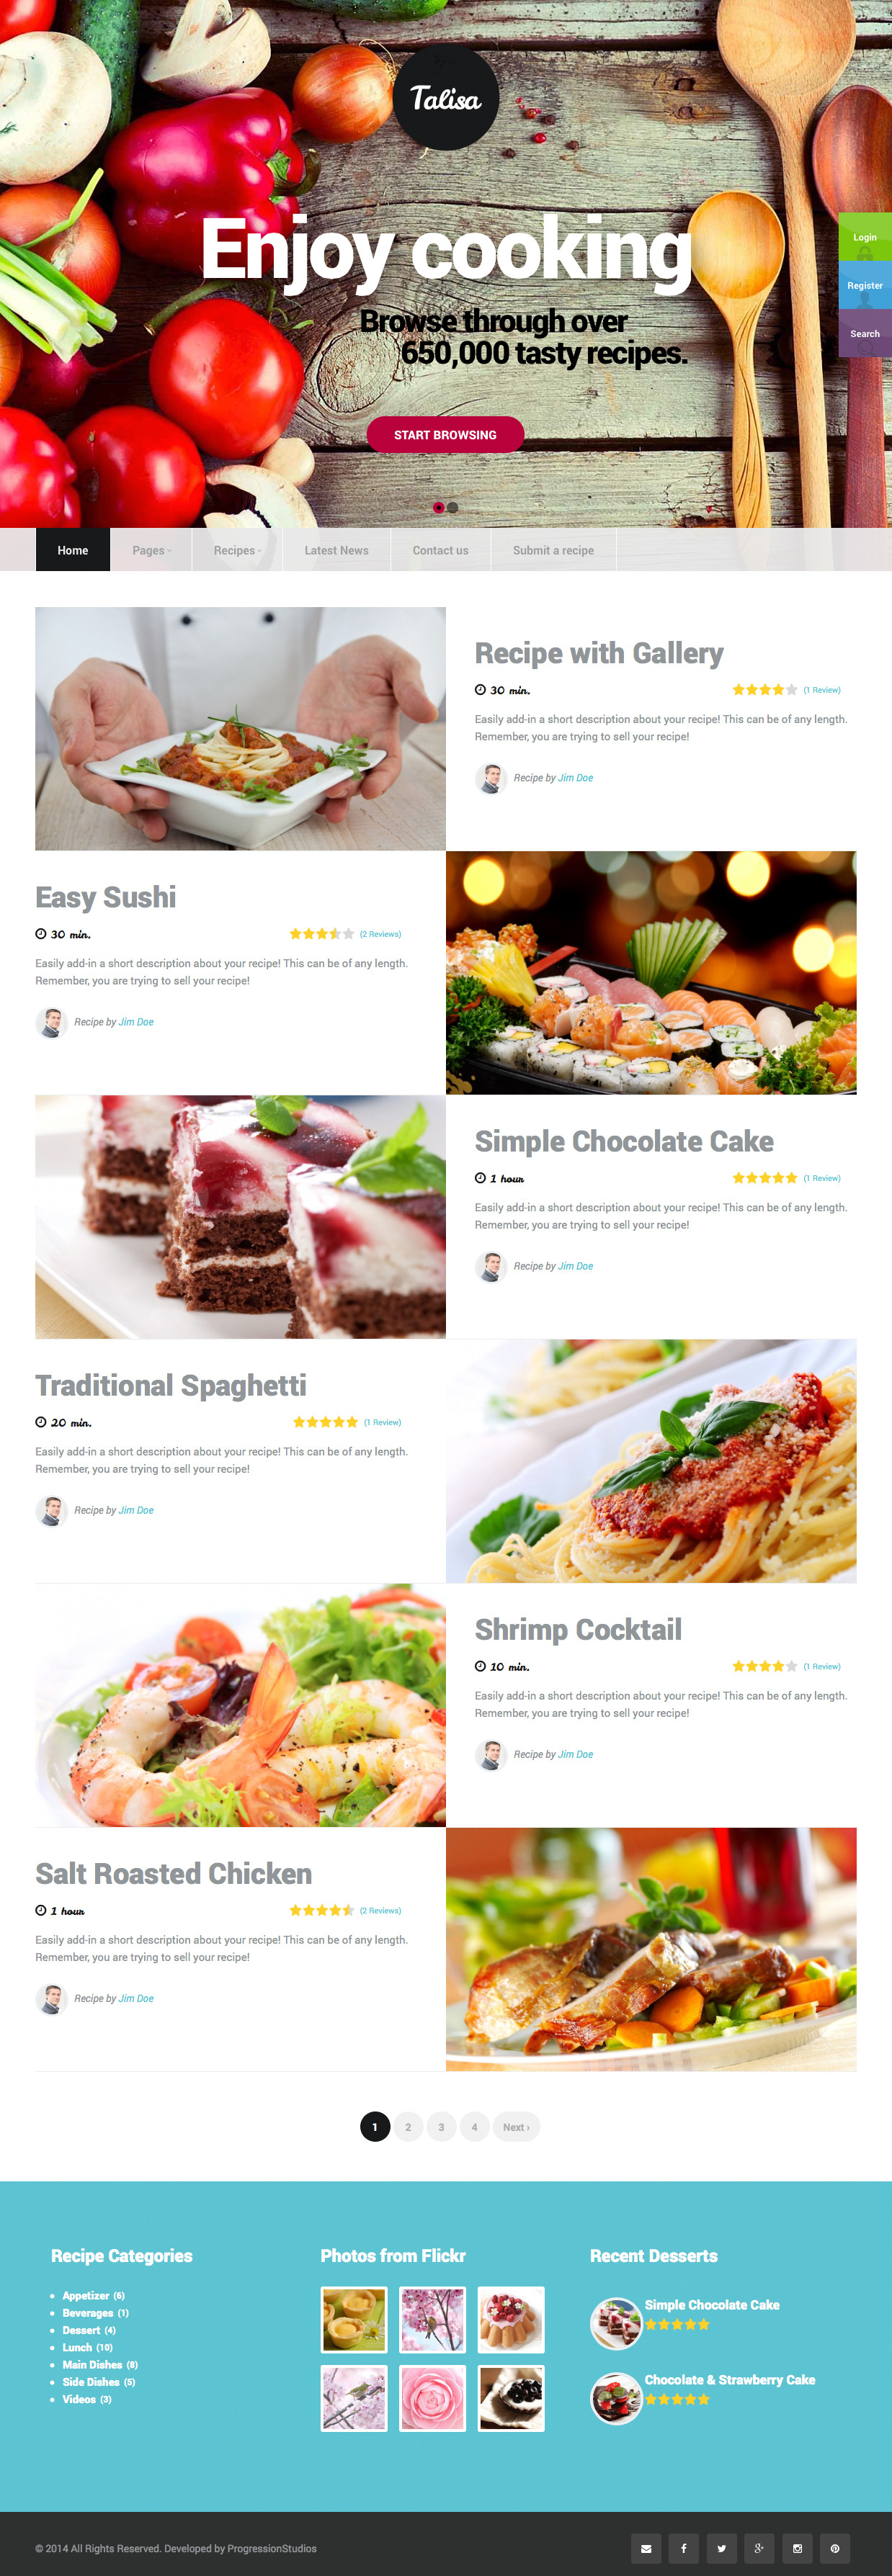 Talisa food recipes wordpress theme by progressionstudios screenshots3 recipe postg screenshots4 profile pageg screenshots5 submit a recipeg screenshots6 theme customizerg forumfinder